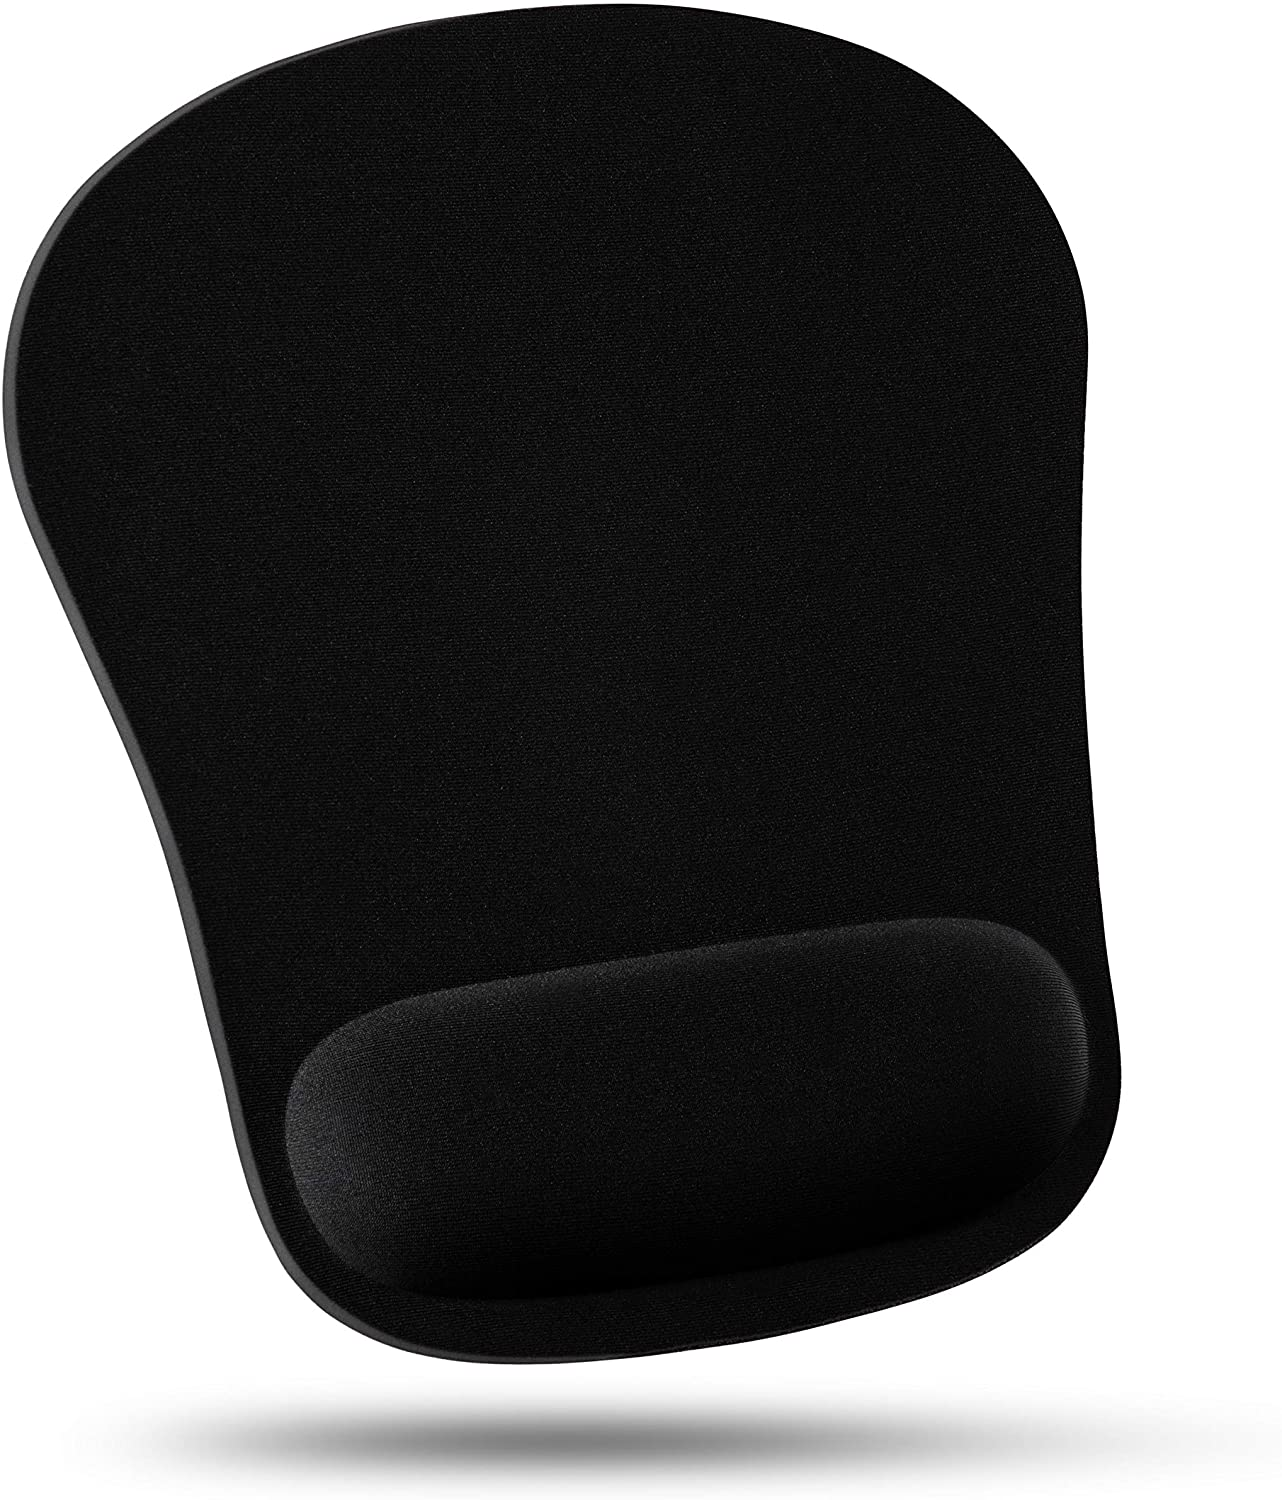 Quality Selection Comfortable Wrist Rest Foam Pad Memory At the price of surprise Mouse à At the price of surprise